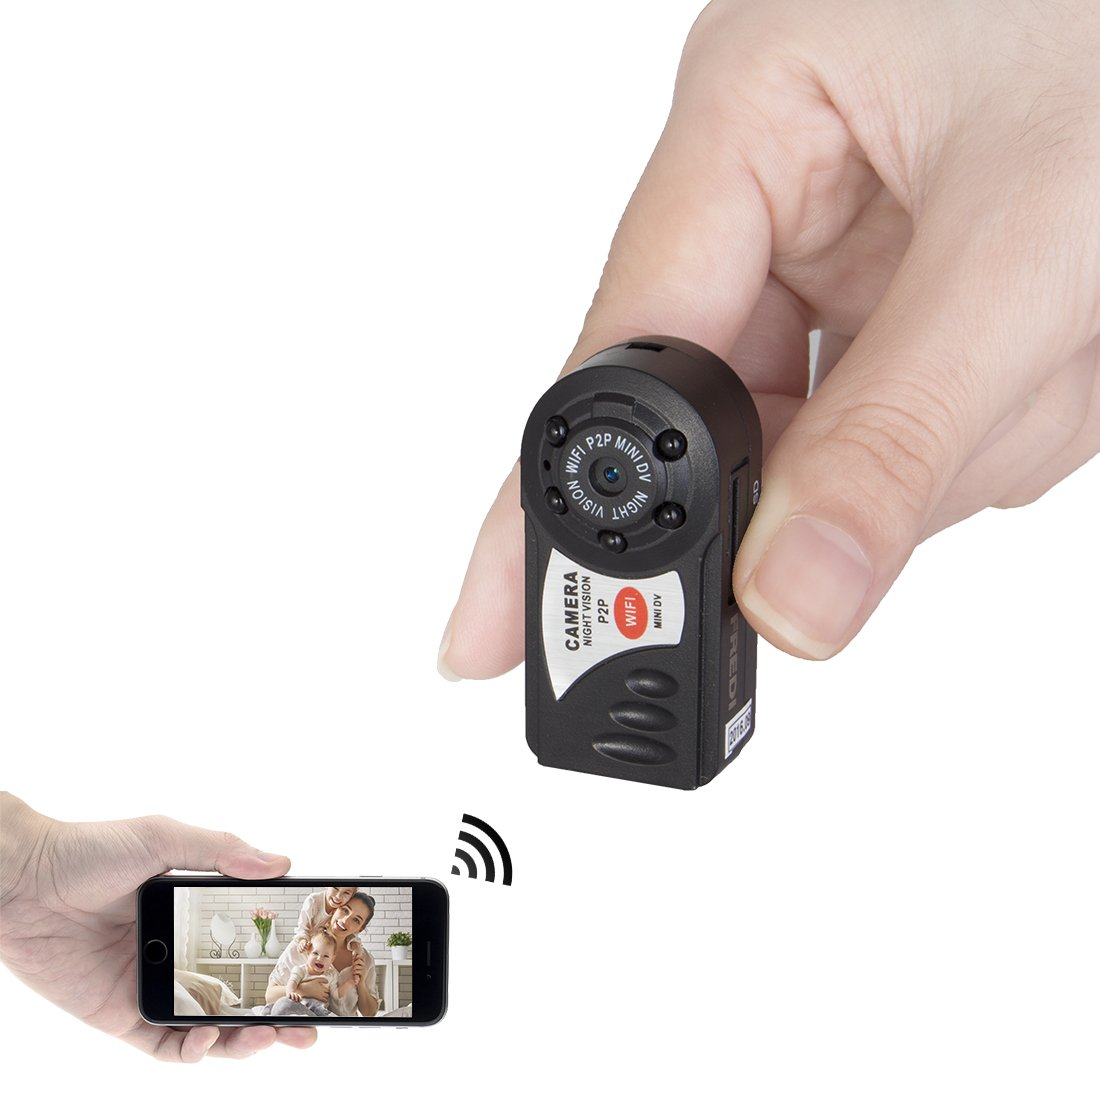 mini portable p2p wifi ip camera indoor outdoor hd hidden spy camera recorder ebay. Black Bedroom Furniture Sets. Home Design Ideas